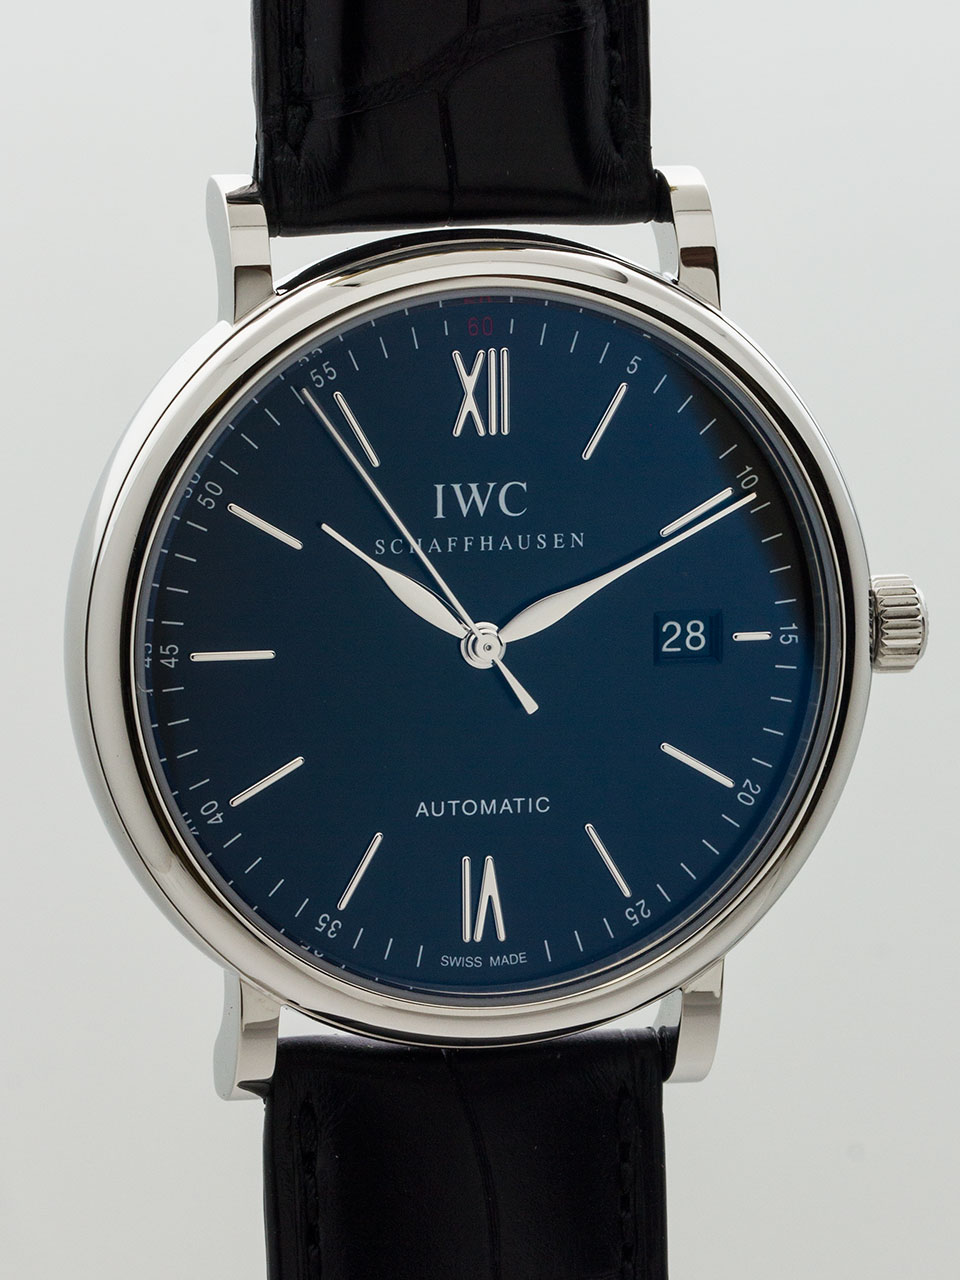 IWC Portofino Automatic w/ Box & Papers